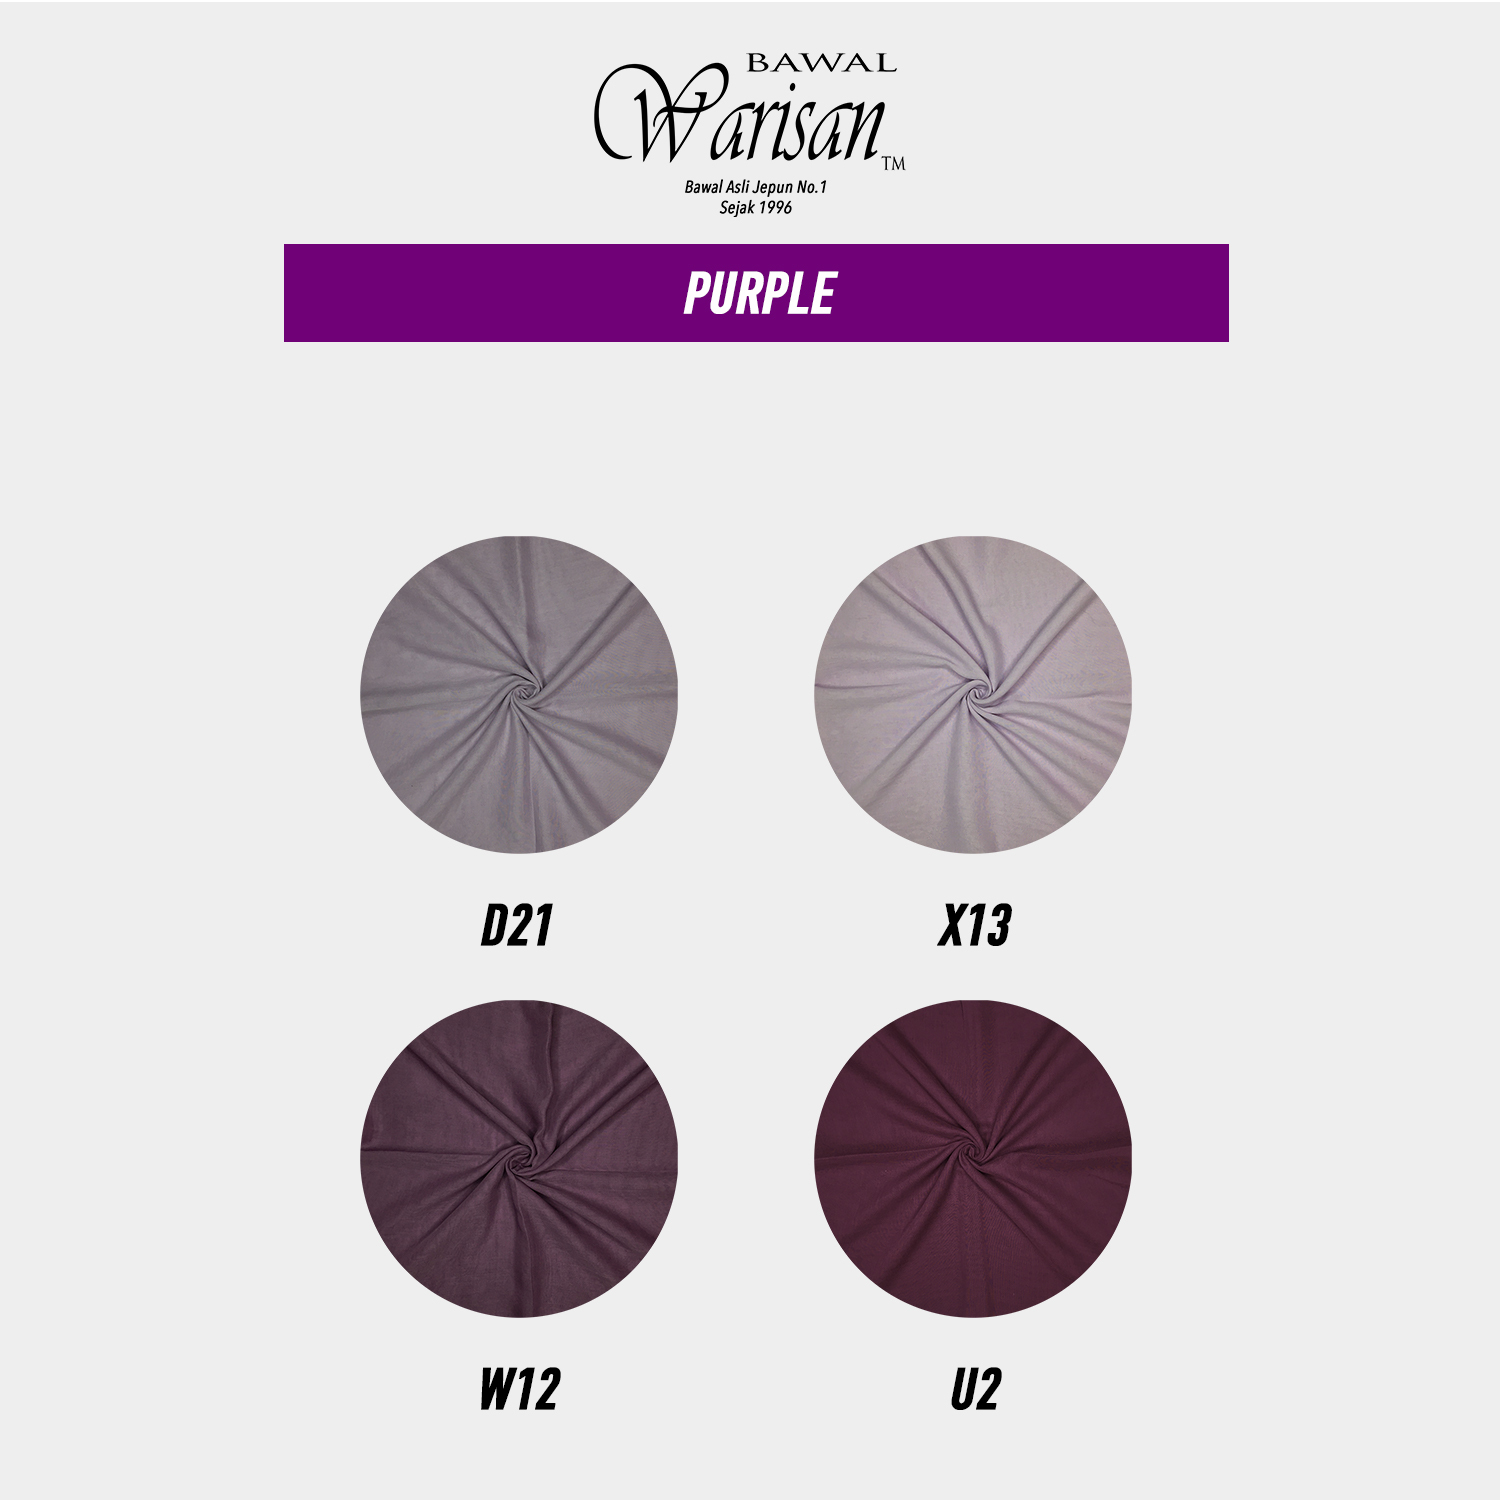 bawal warisan color chart PURPLE v1.jpg